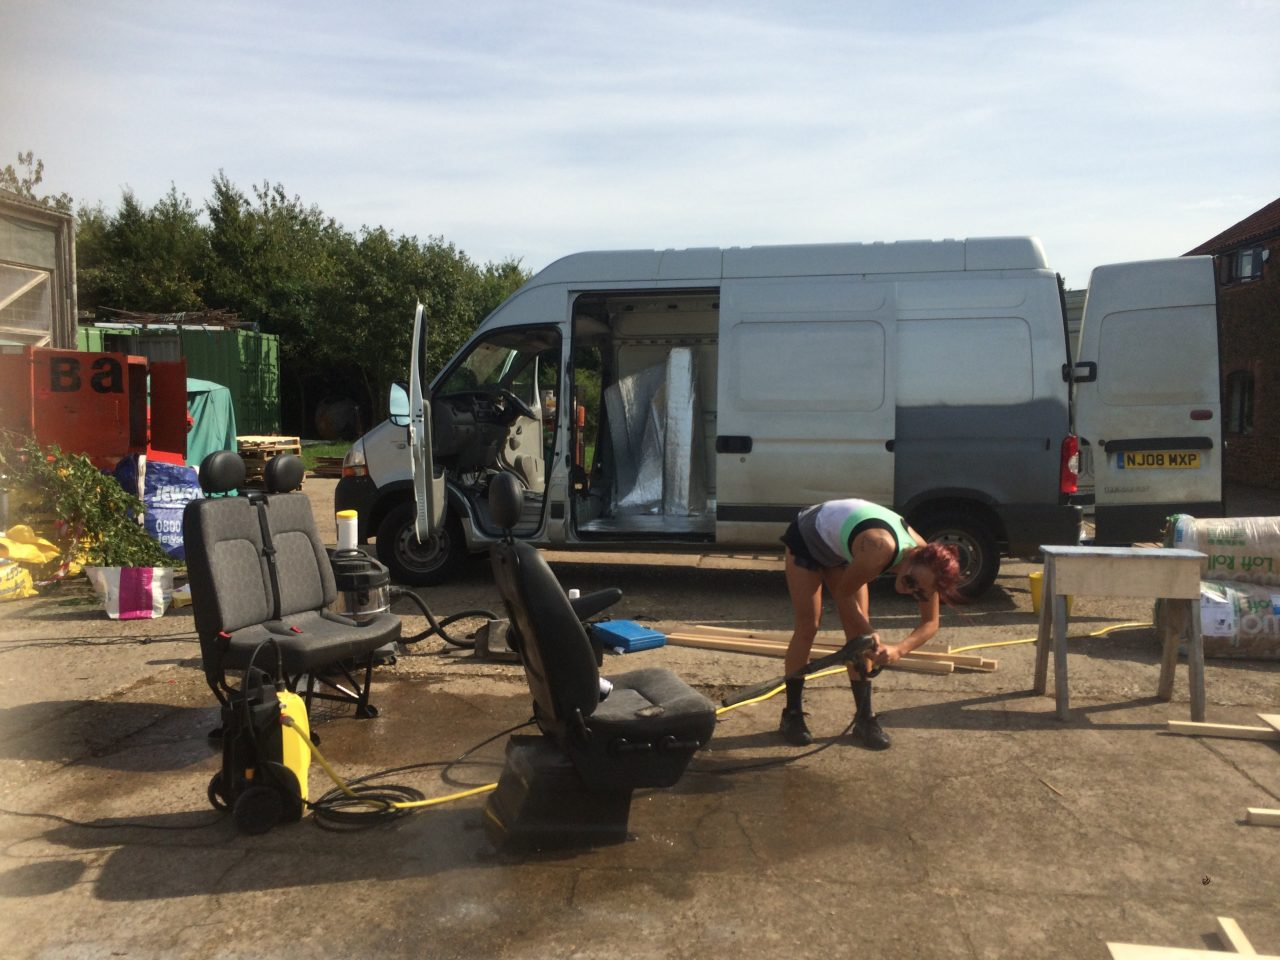 cleaning-the-beast-donkey-van-conversion-70-washing-seats